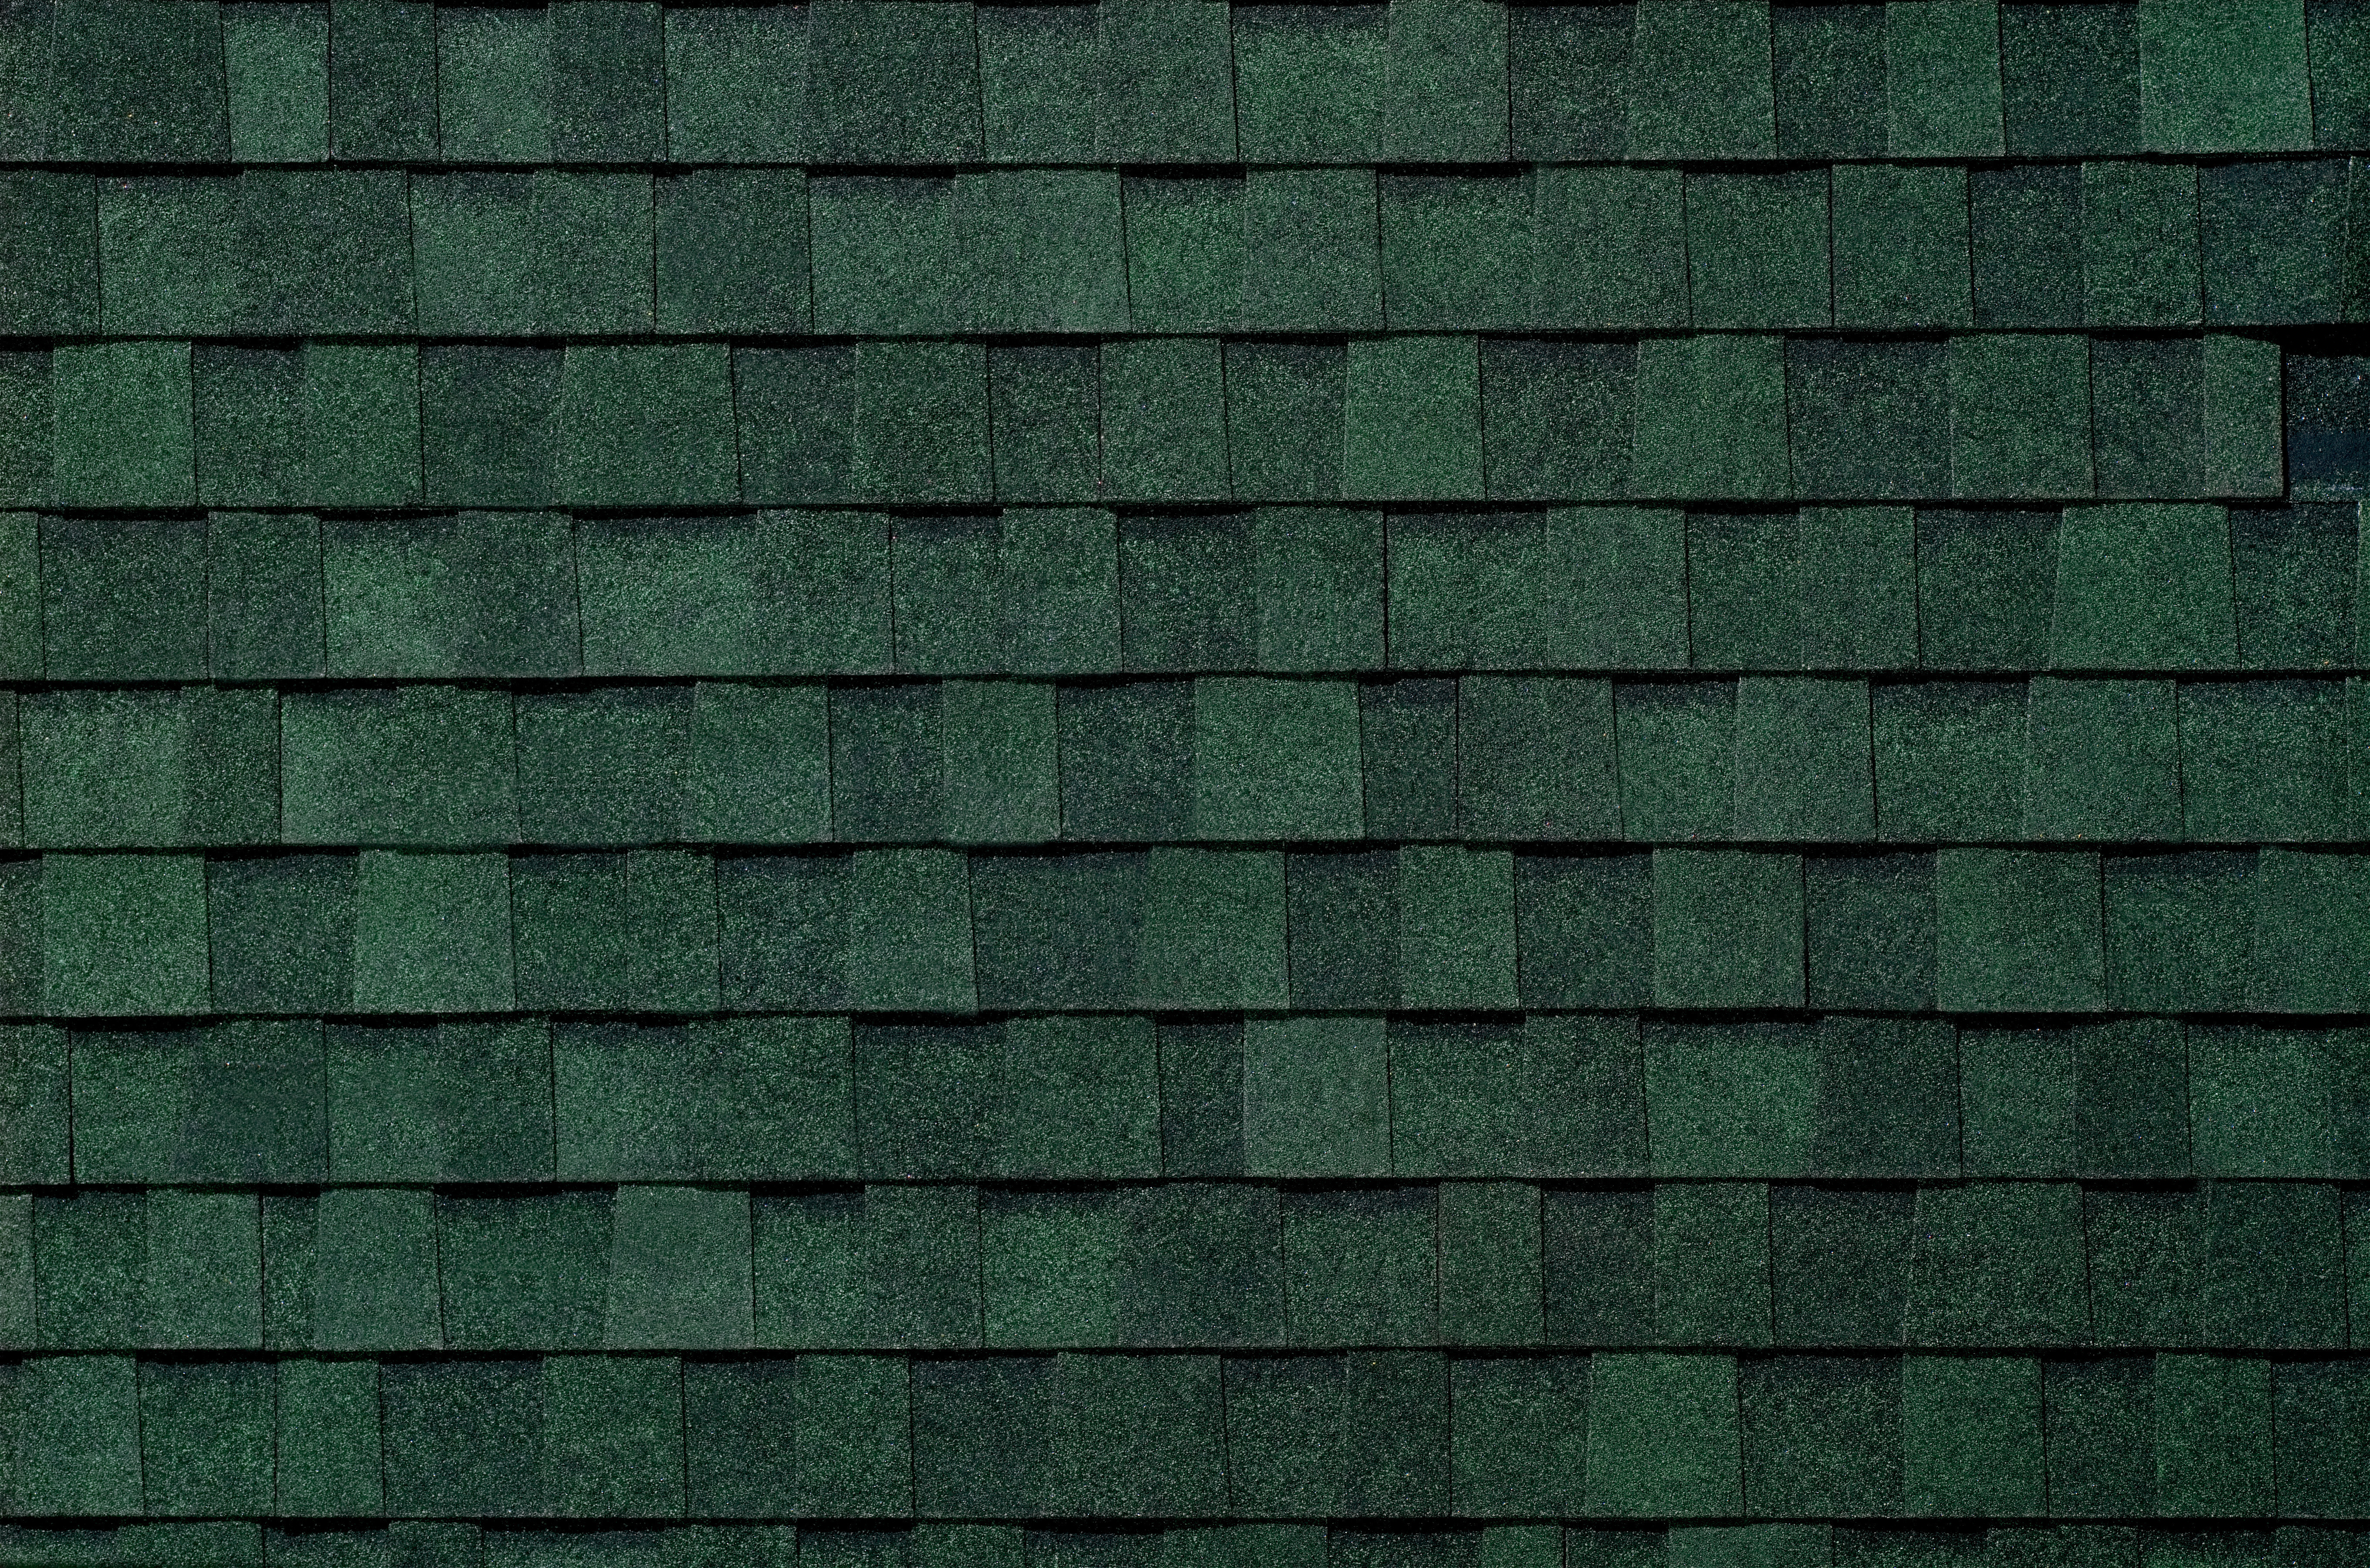 TAMKO Heritage Series - Rustic Evergreen (Phillipsburg)